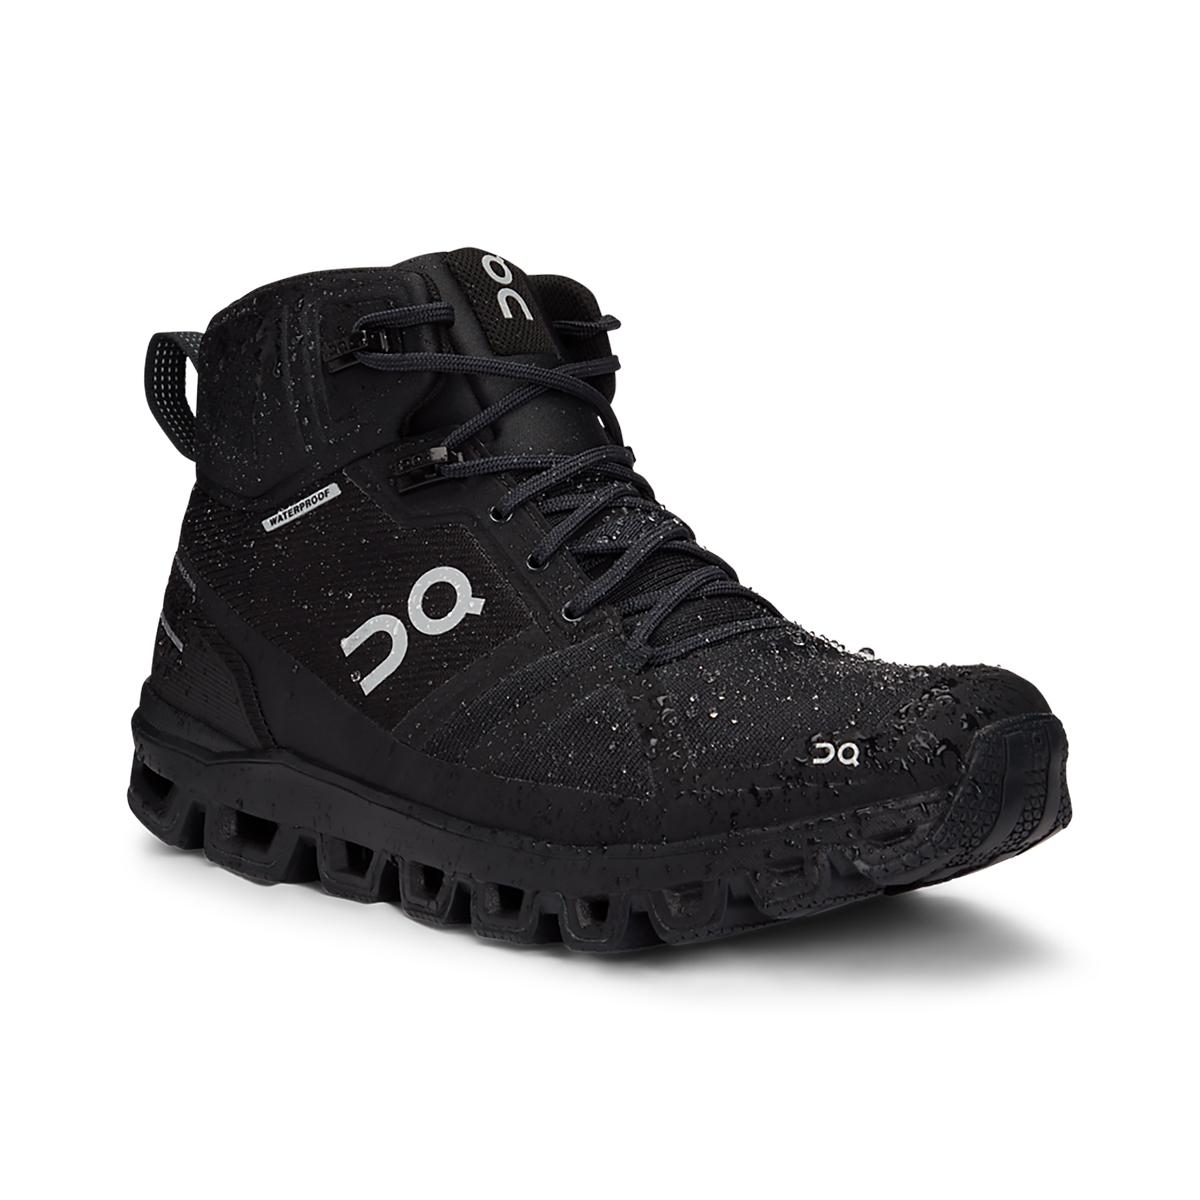 Women's On Cloudrock Waterproof Trail Running Shoe - Color: All Black - Size: 5 - Width: Wide, All Black, large, image 2